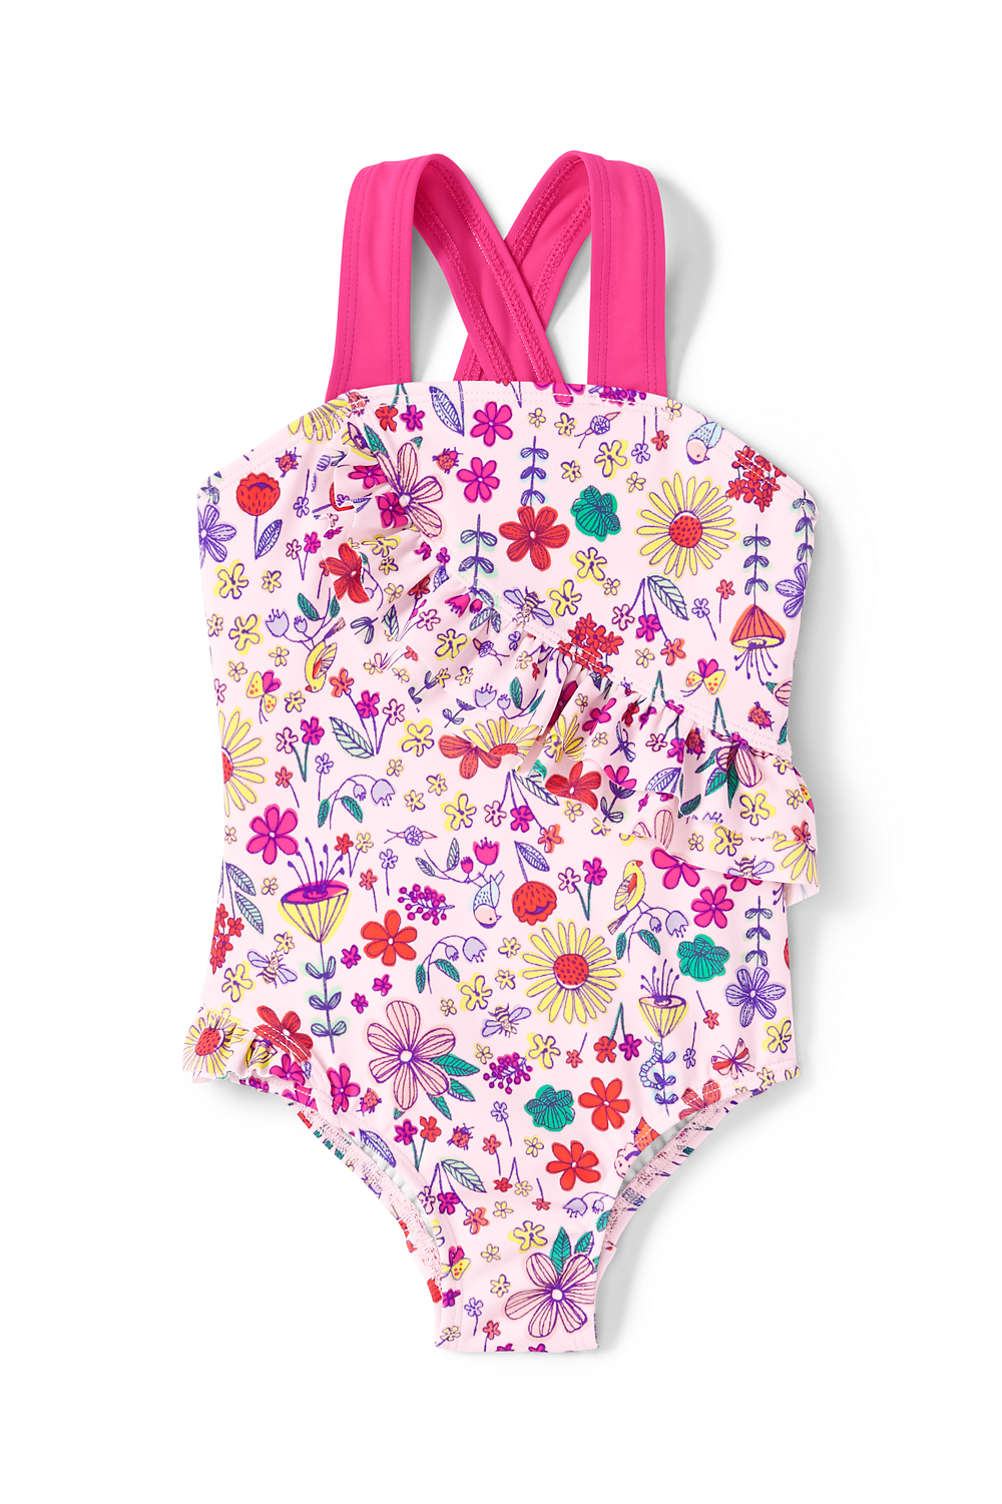 7948eb6abe6c8 Toddler Girls Printed Ruffle One Piece Swimsuit from Lands' End